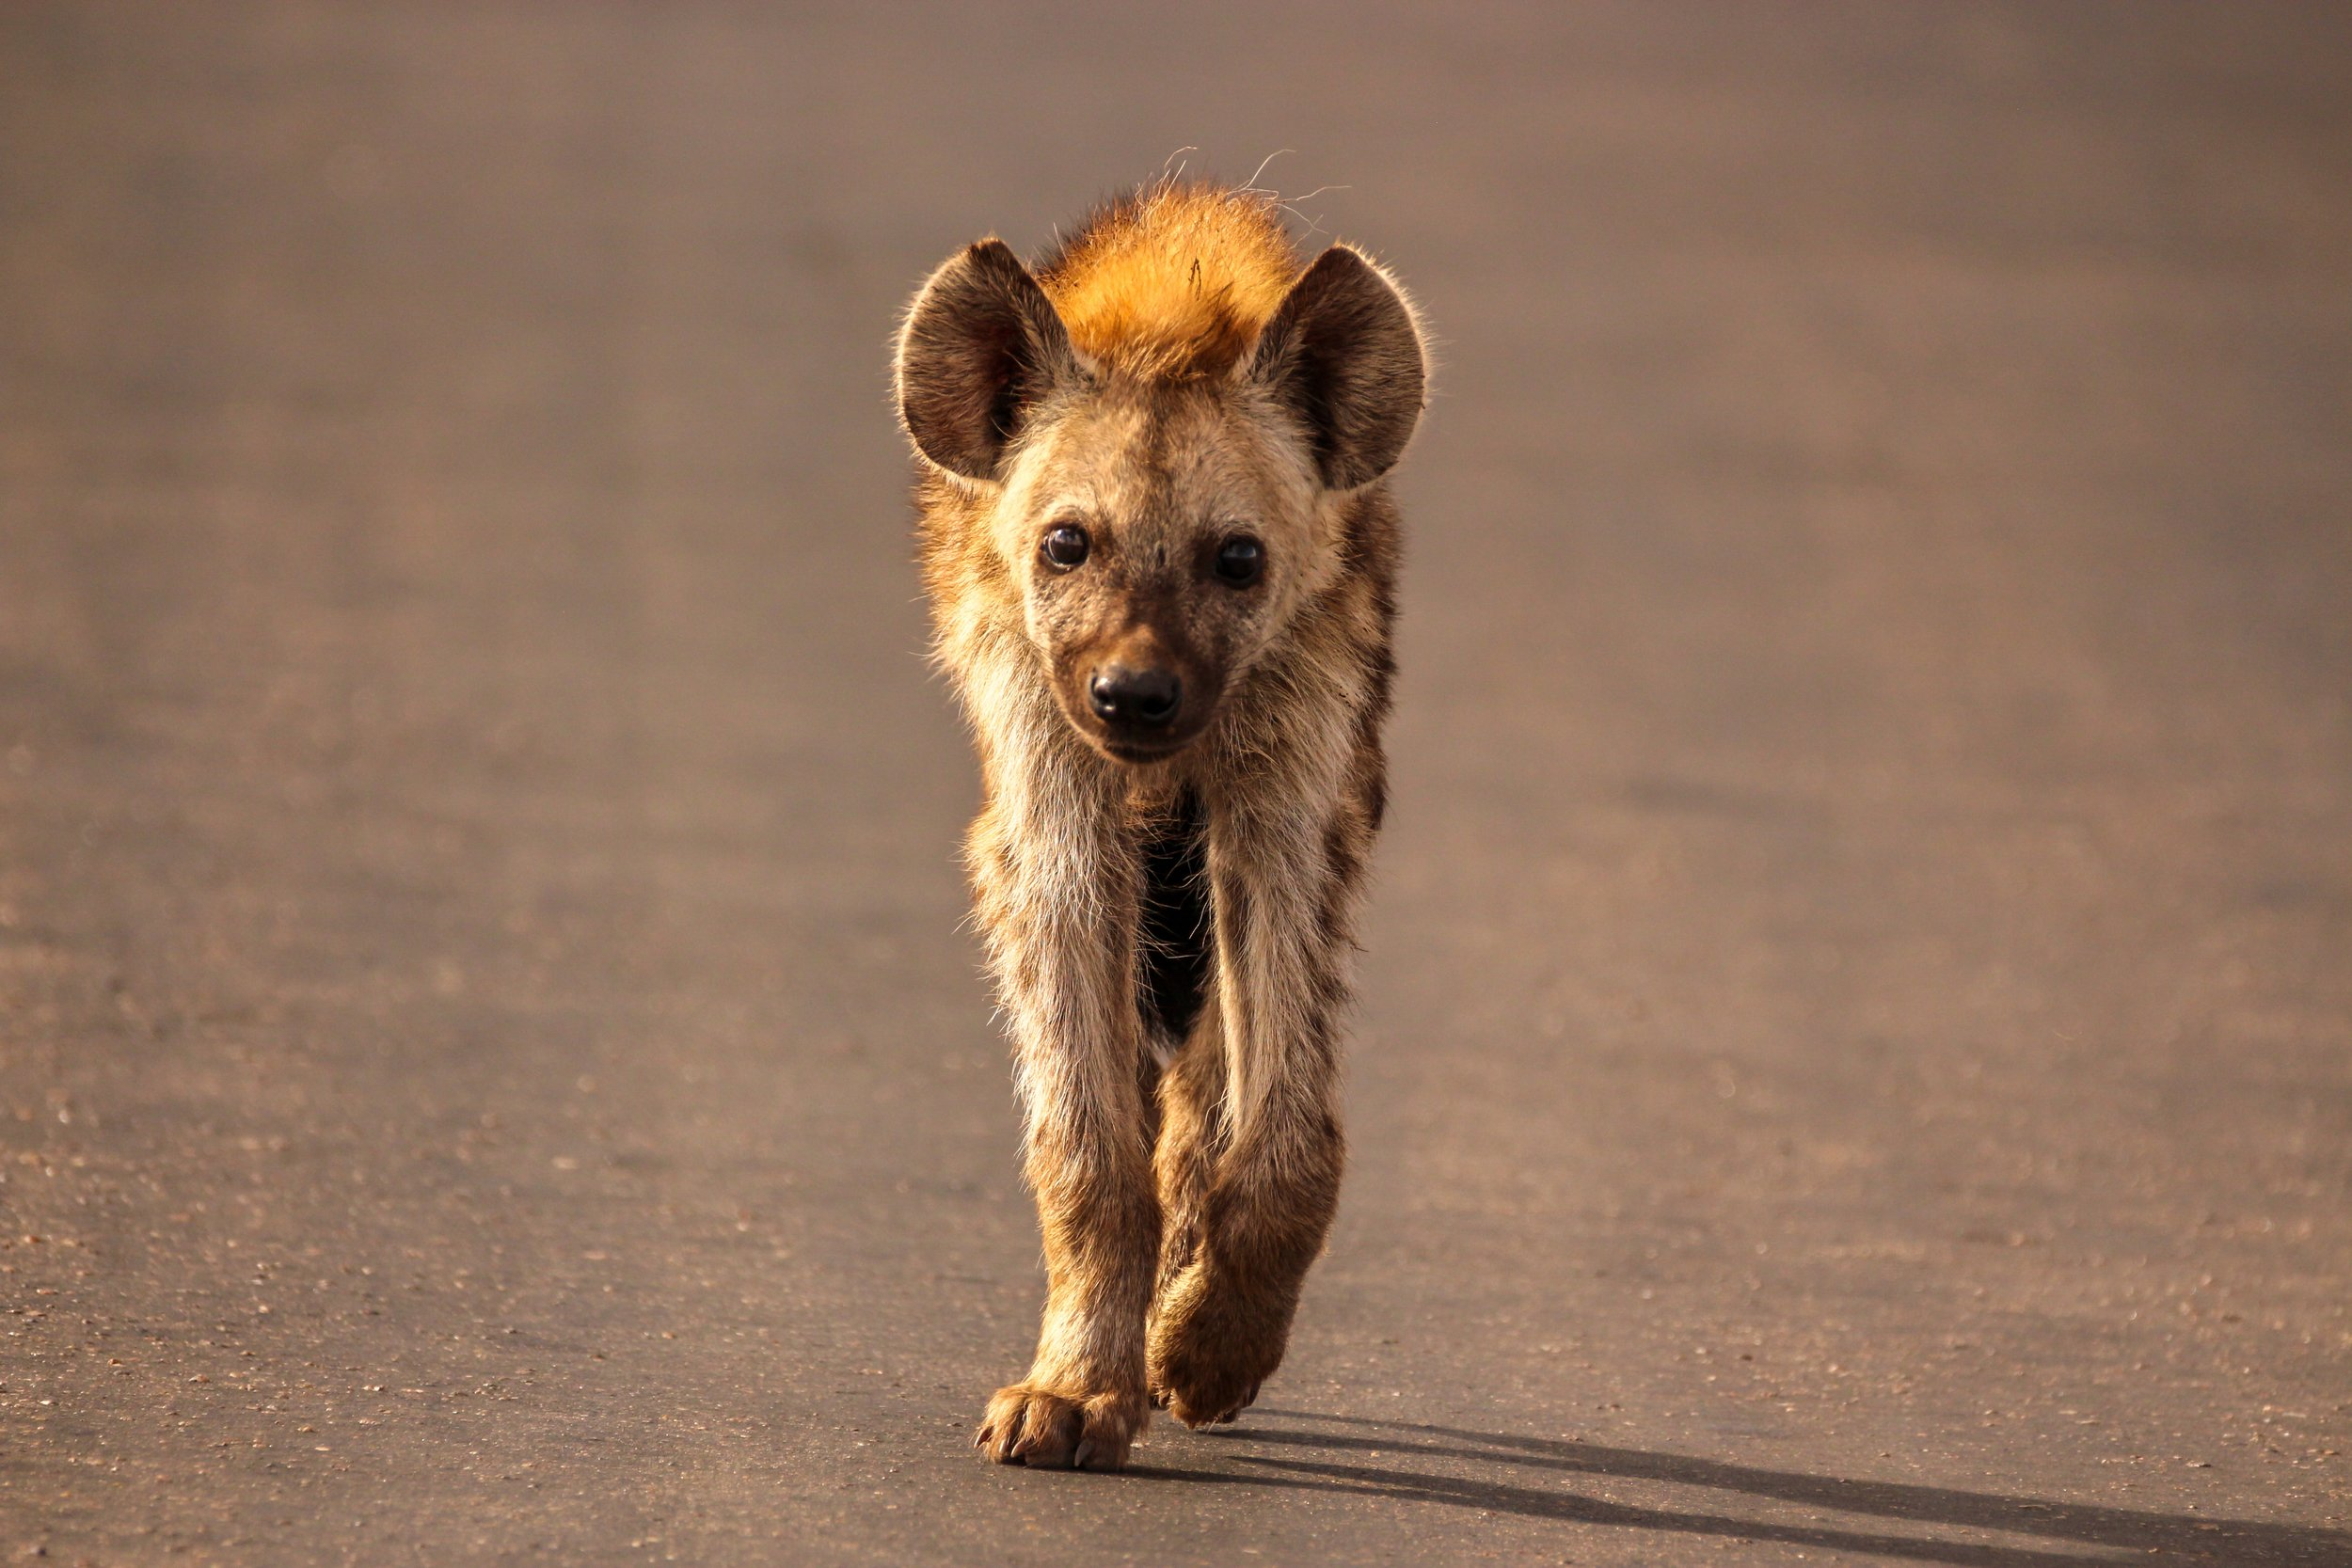 Shrink, a male spotted hyena in Tanzania, must read social cues and find acceptance within his clan.